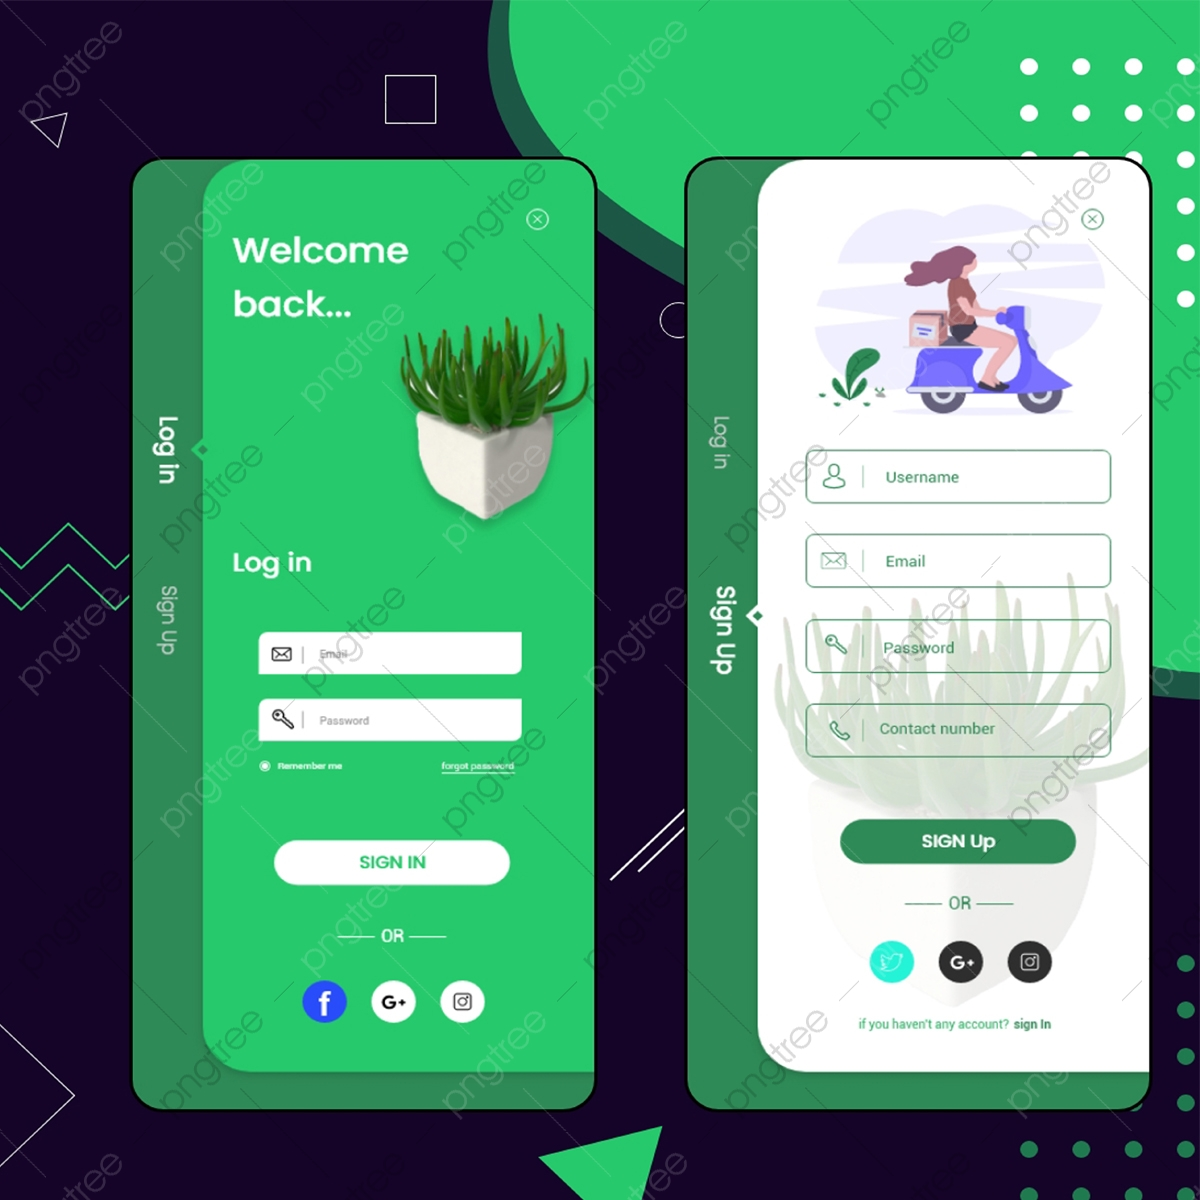 I will do mobile app development,  UI design for android and IOS using flutter